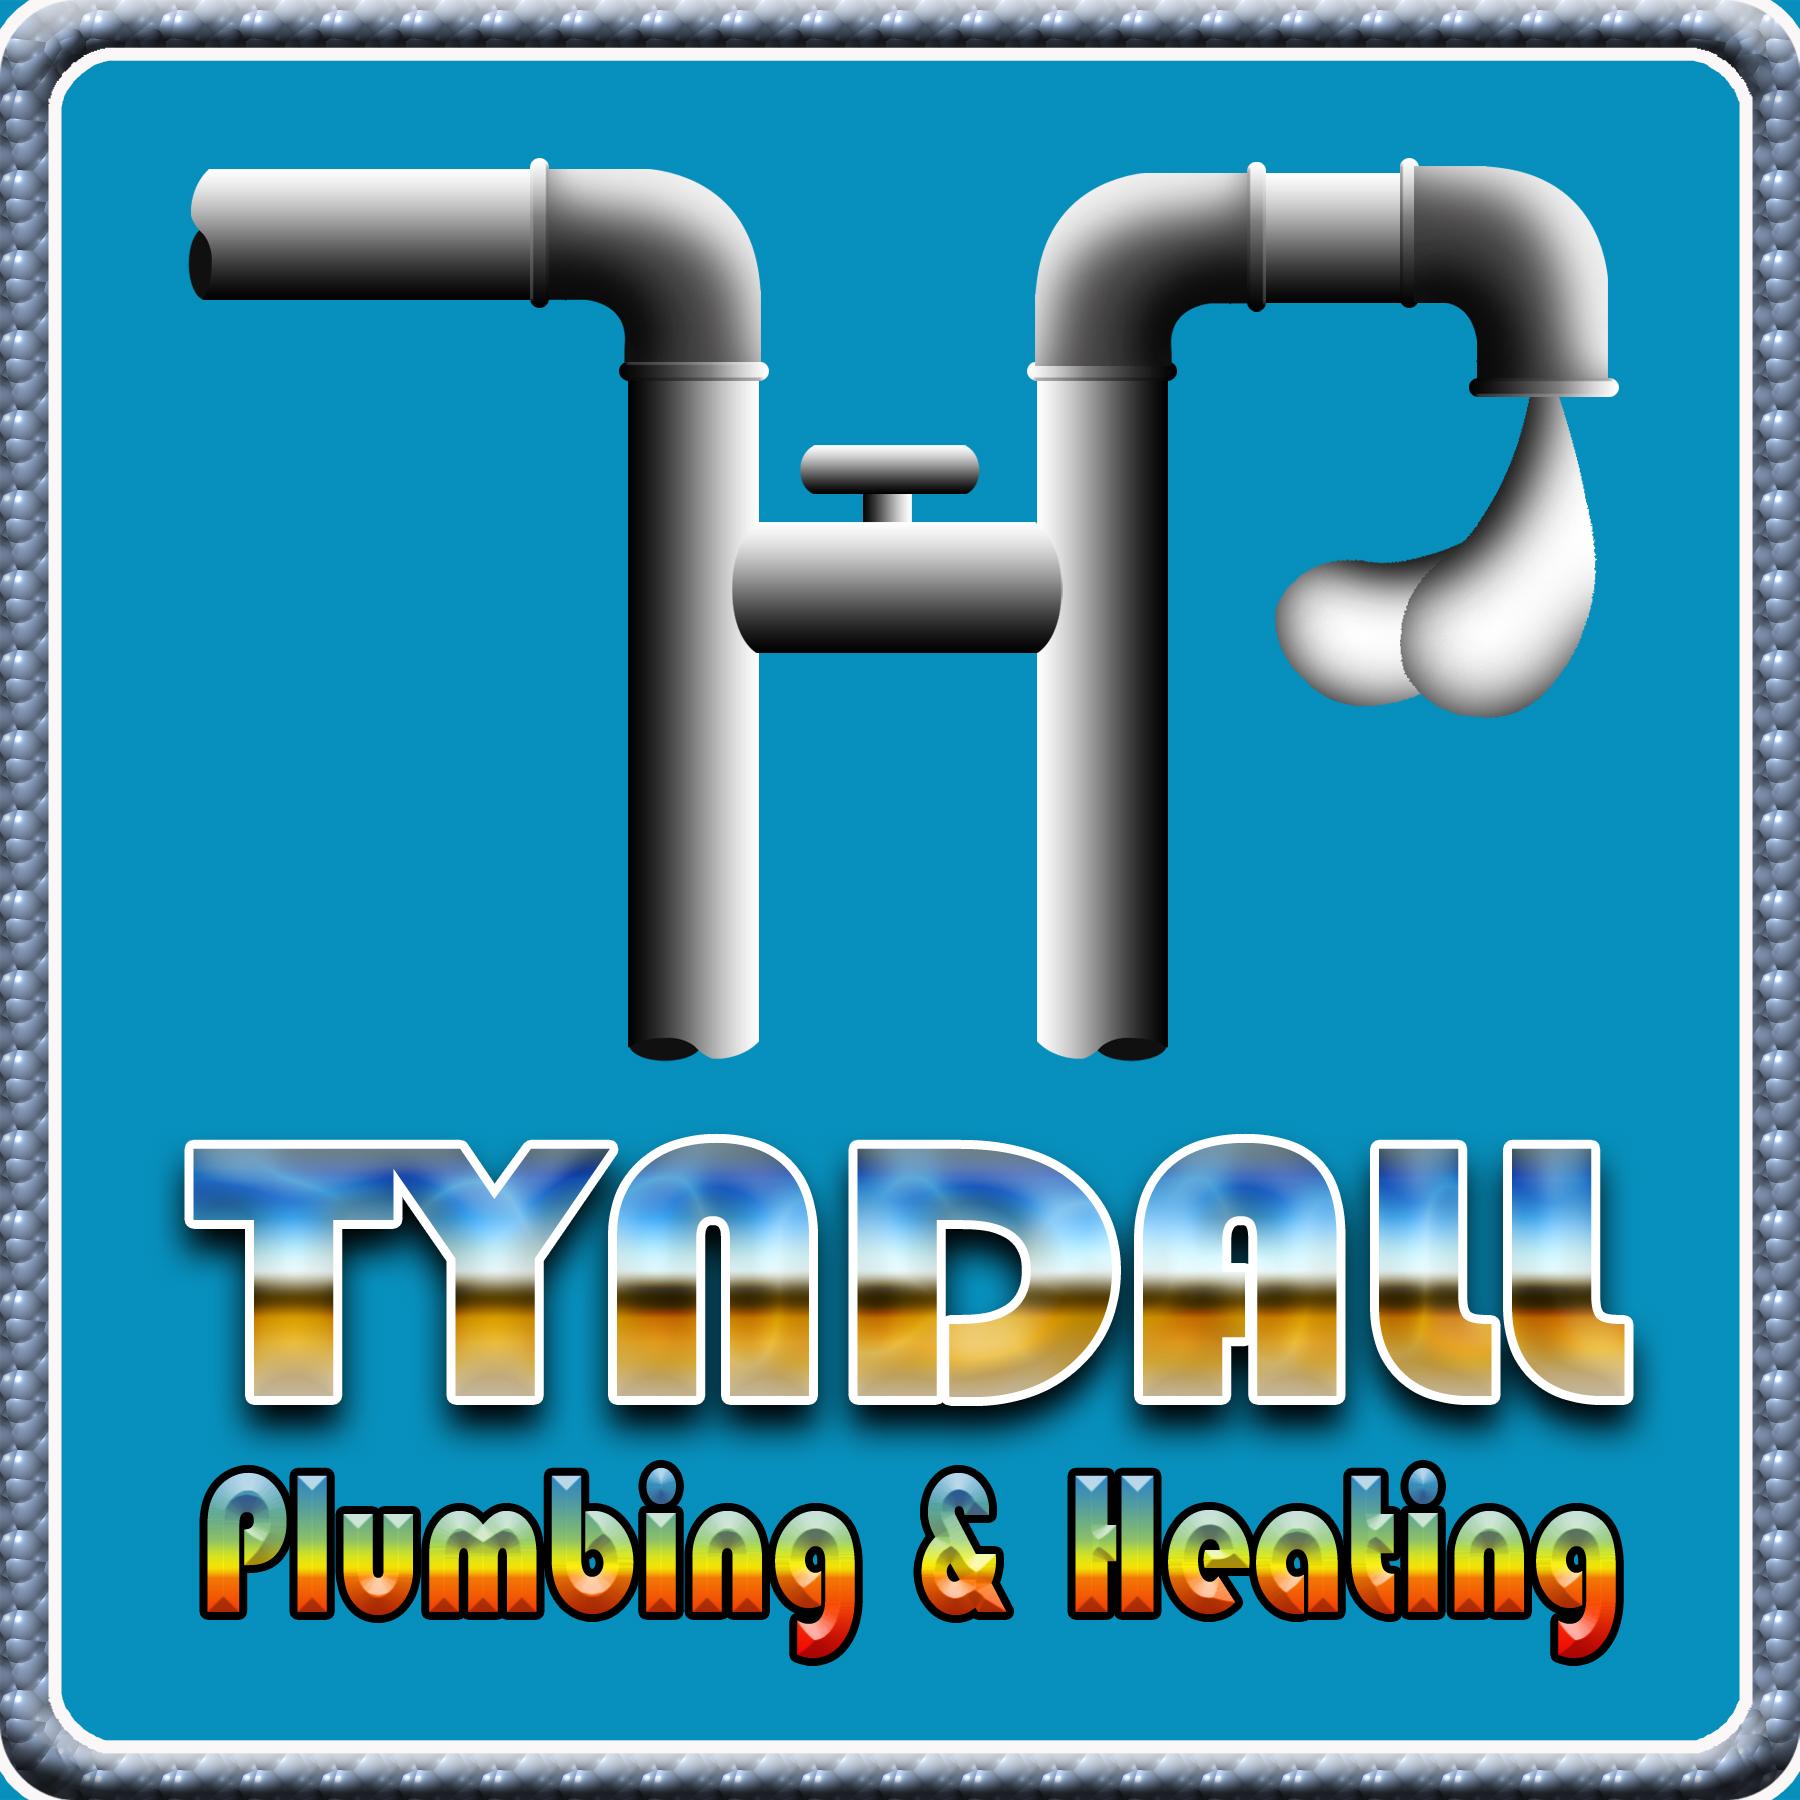 Logo Design by Kitz Malinao - Entry No. 25 in the Logo Design Contest Imaginative Logo Design for Tyndall Plumbing & Heating.